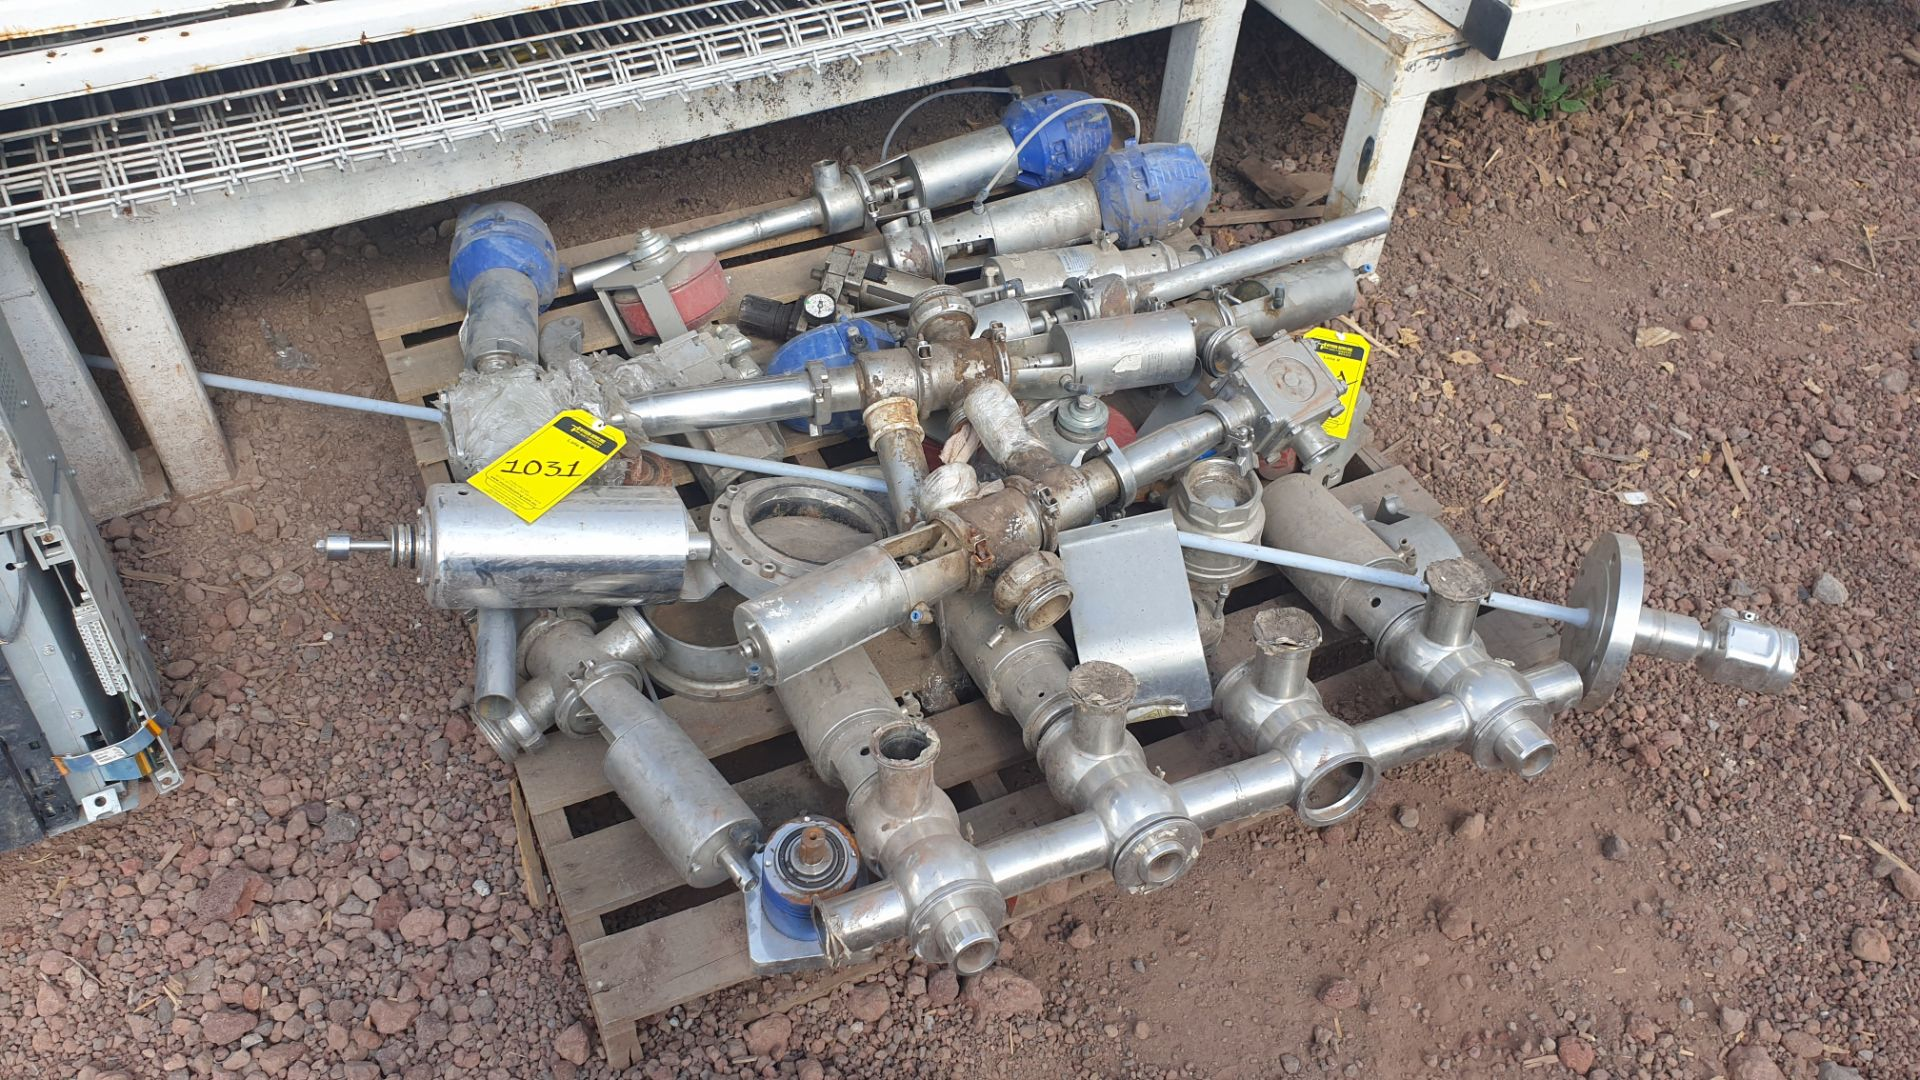 Lot of spare parts, valves, volumetric scales. Please inspect - Image 5 of 8